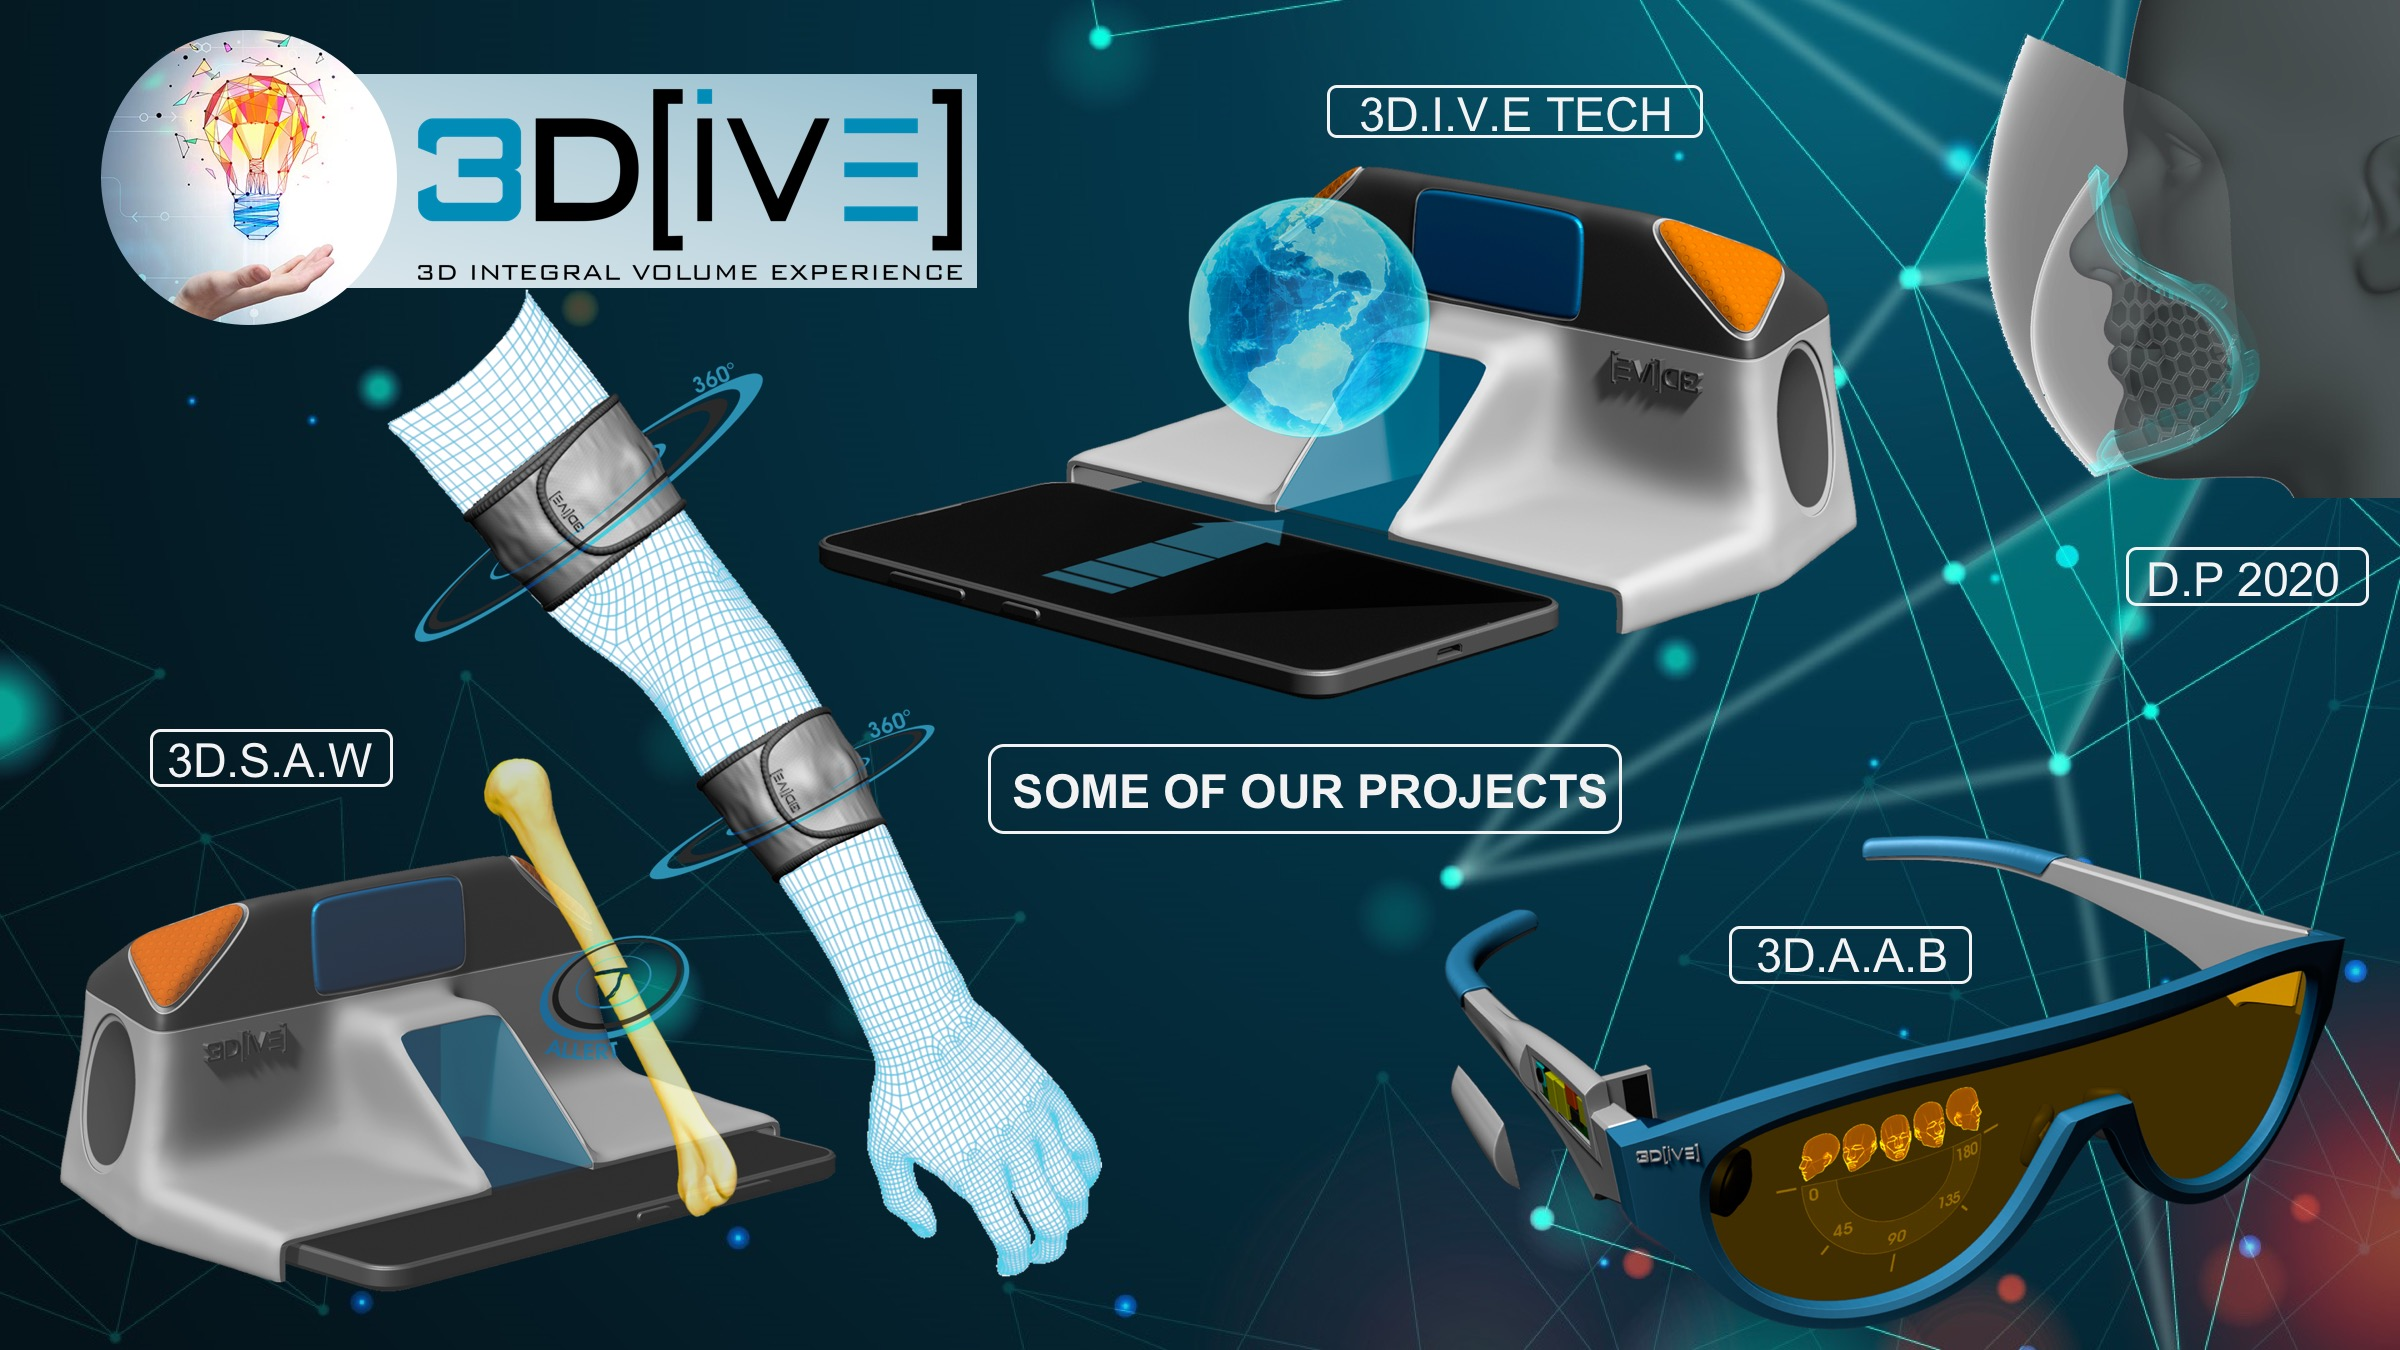 3d-i-v-e-srl-graphic-slide